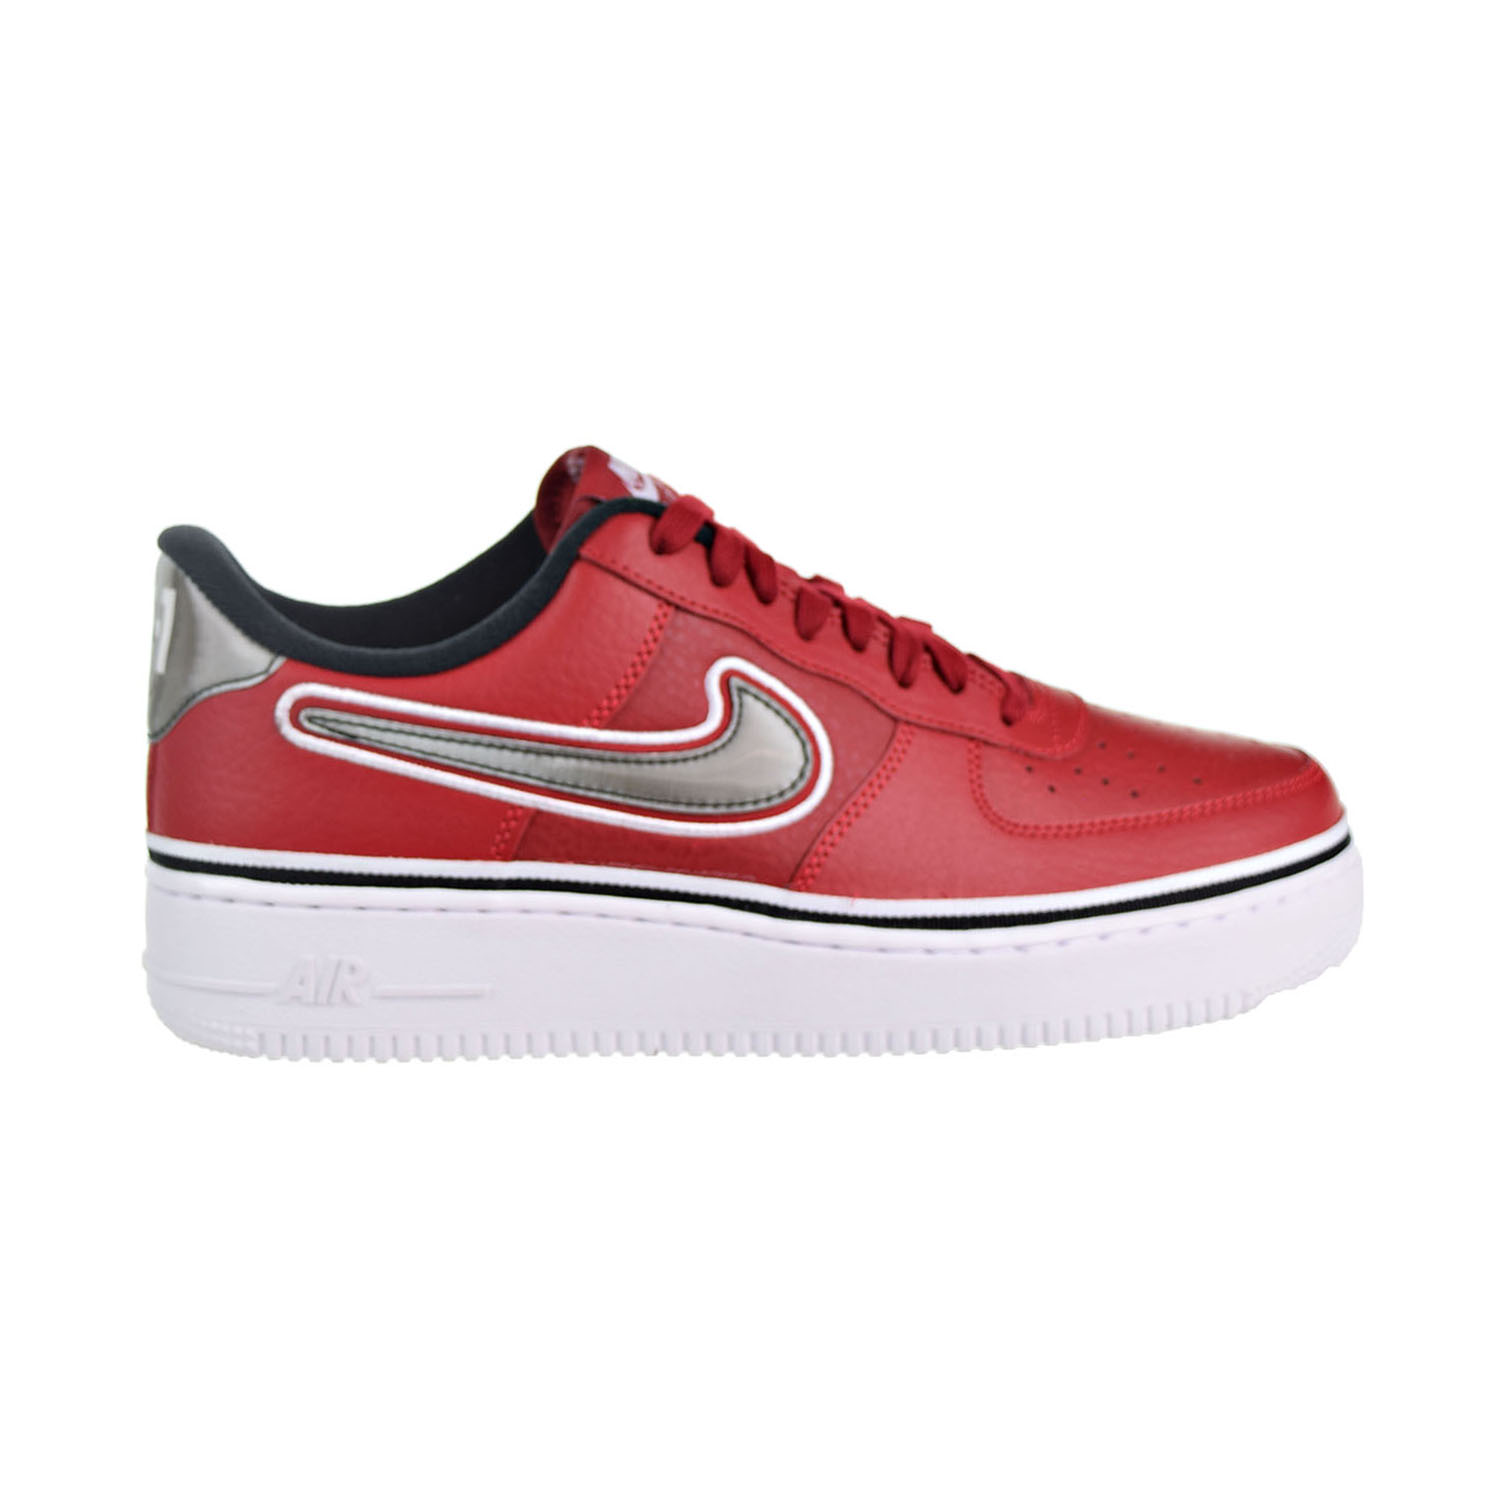 ffe5386827974 Details about Nike Air Force 1  07 LV8 Sport NBA Mens Shoes Varsity Red  Black White AJ7748-600